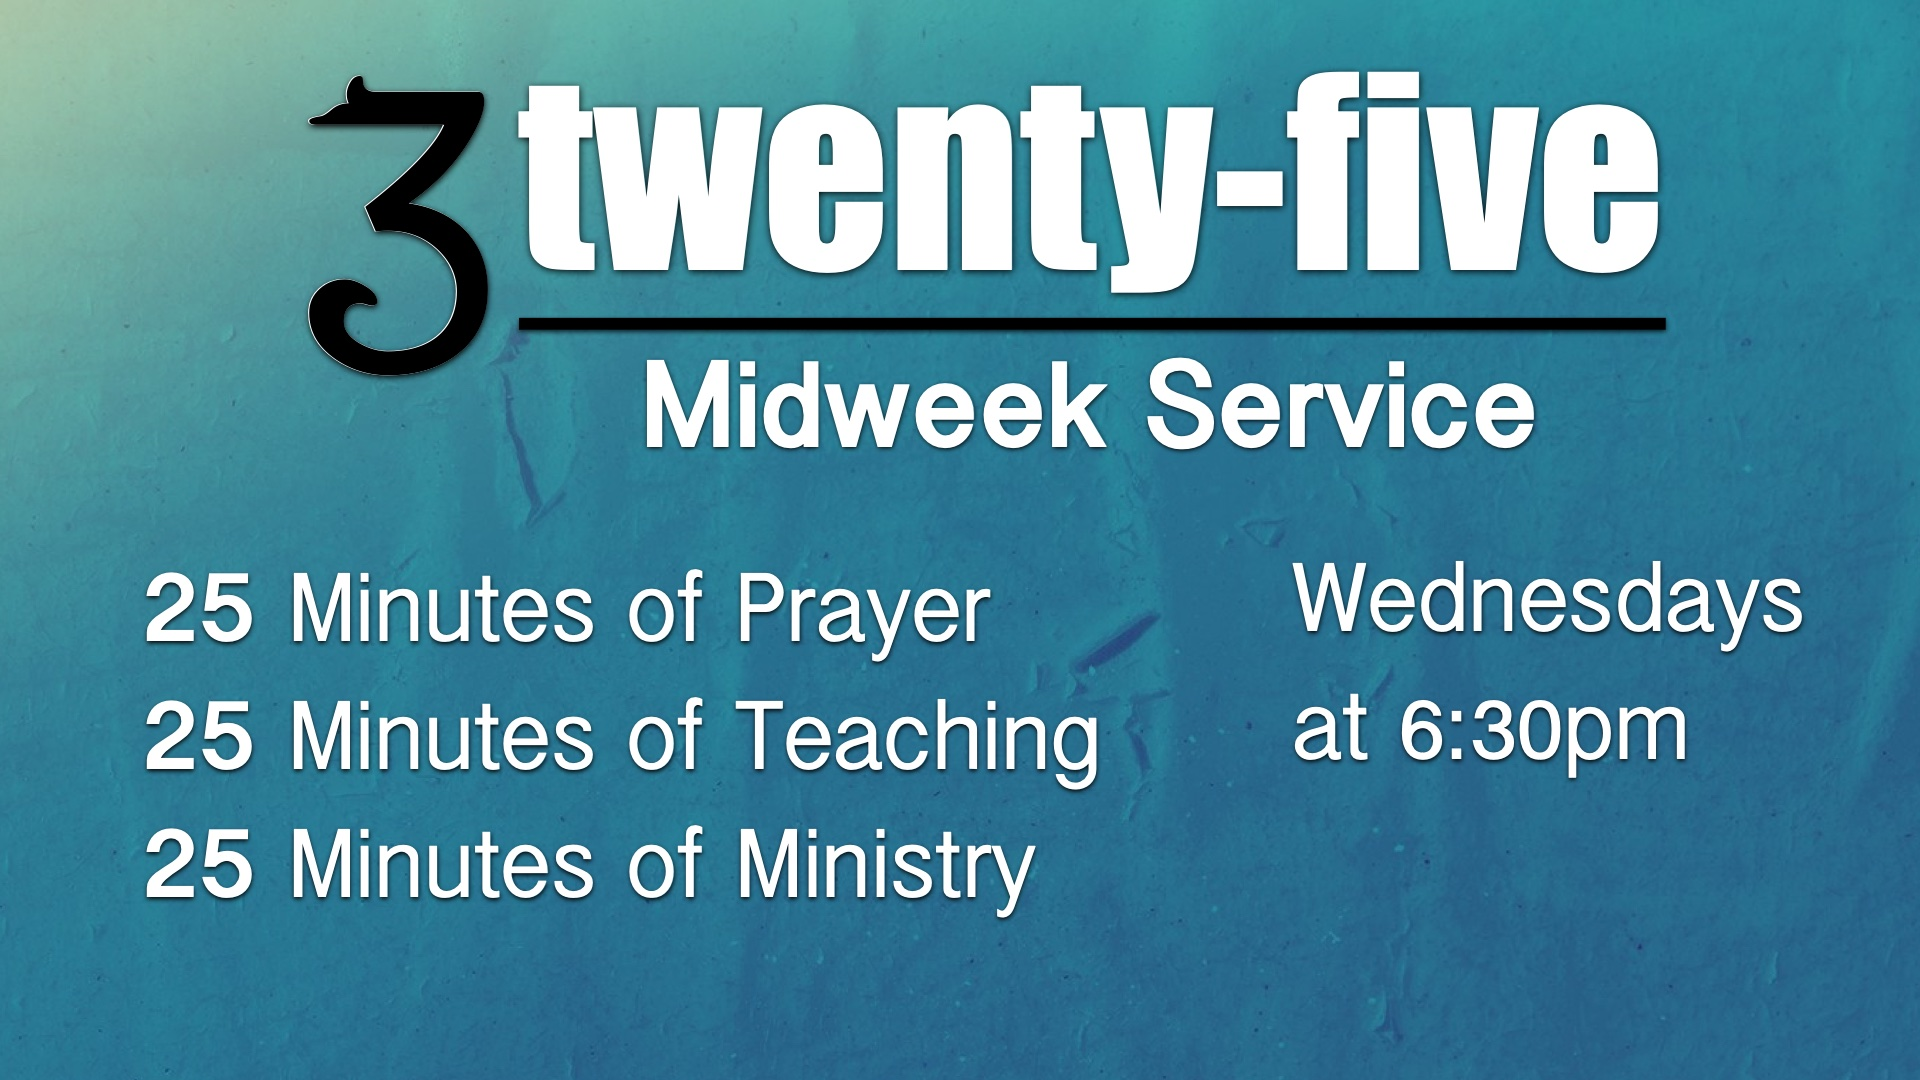 3 Twenty-five - Join us for our midweek service as we come together to prayer for our nation, to study the Word of God, and to have a time of ministry lead by the Holy Spirit. Every Wednesday at 6:30pm. See you there!27755 Bradley Rd. Menifee CA 92879